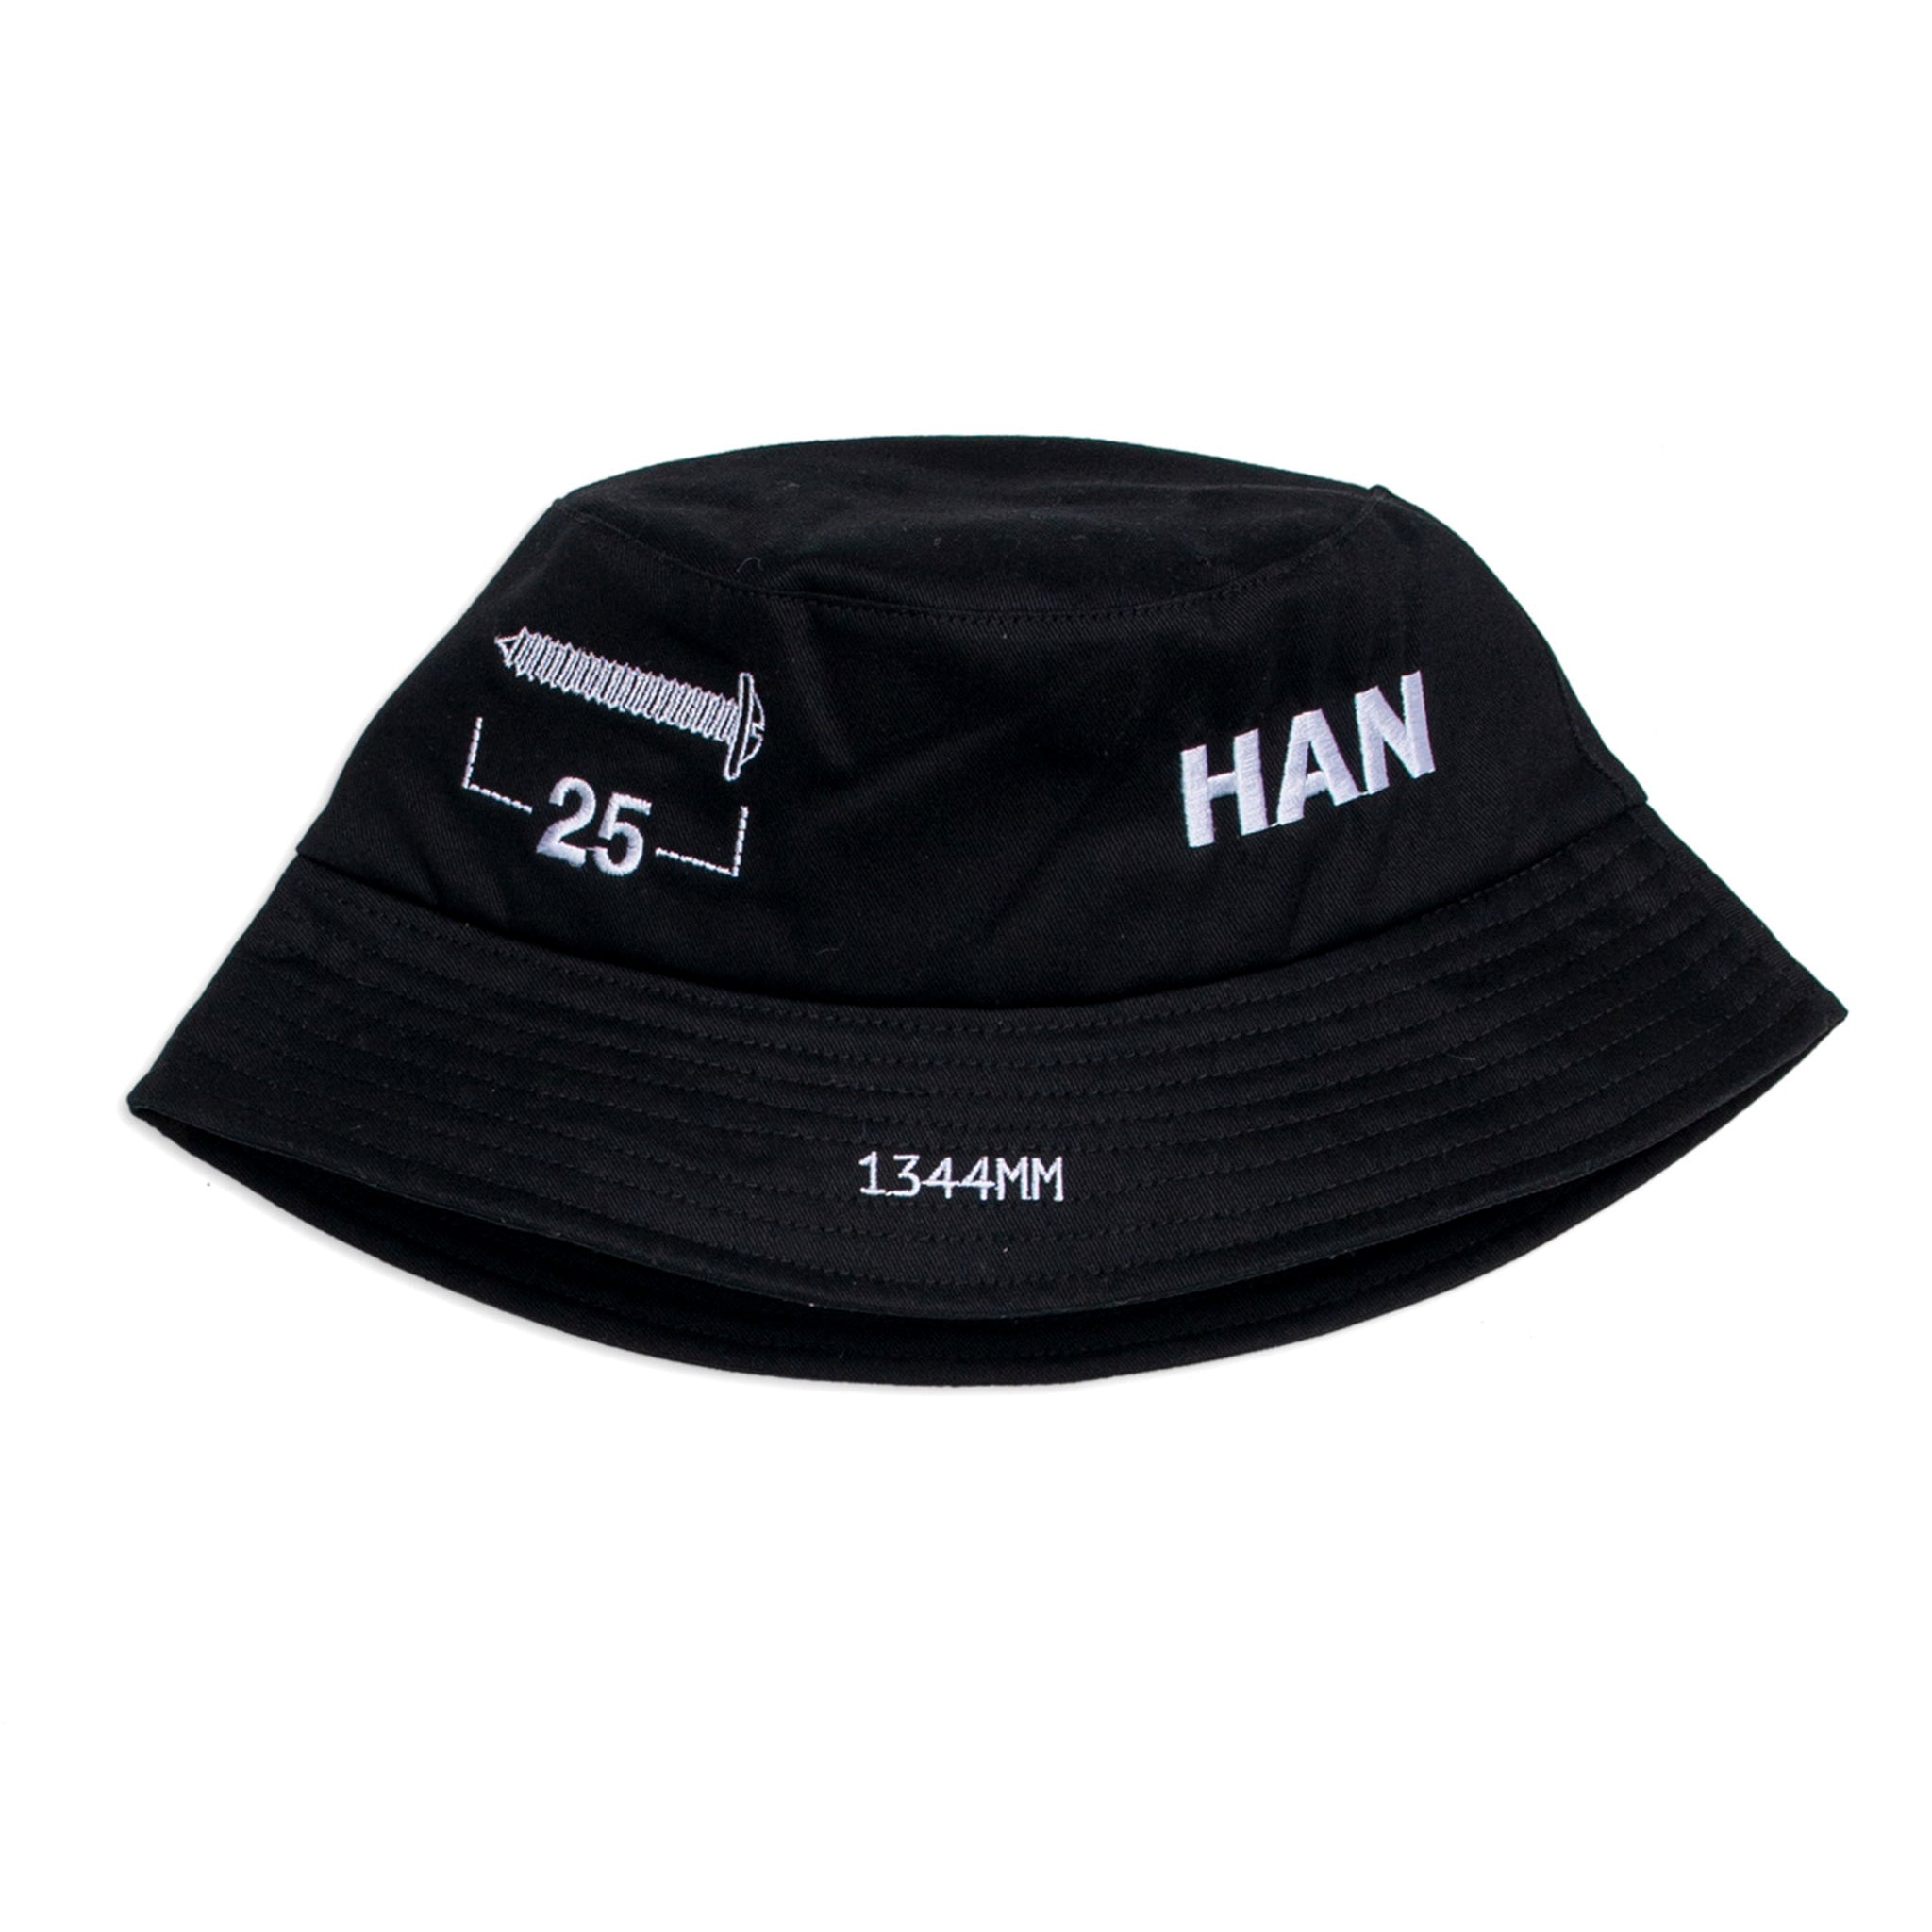 Han Kjobenhavn Dimensions Bucket Hat Black